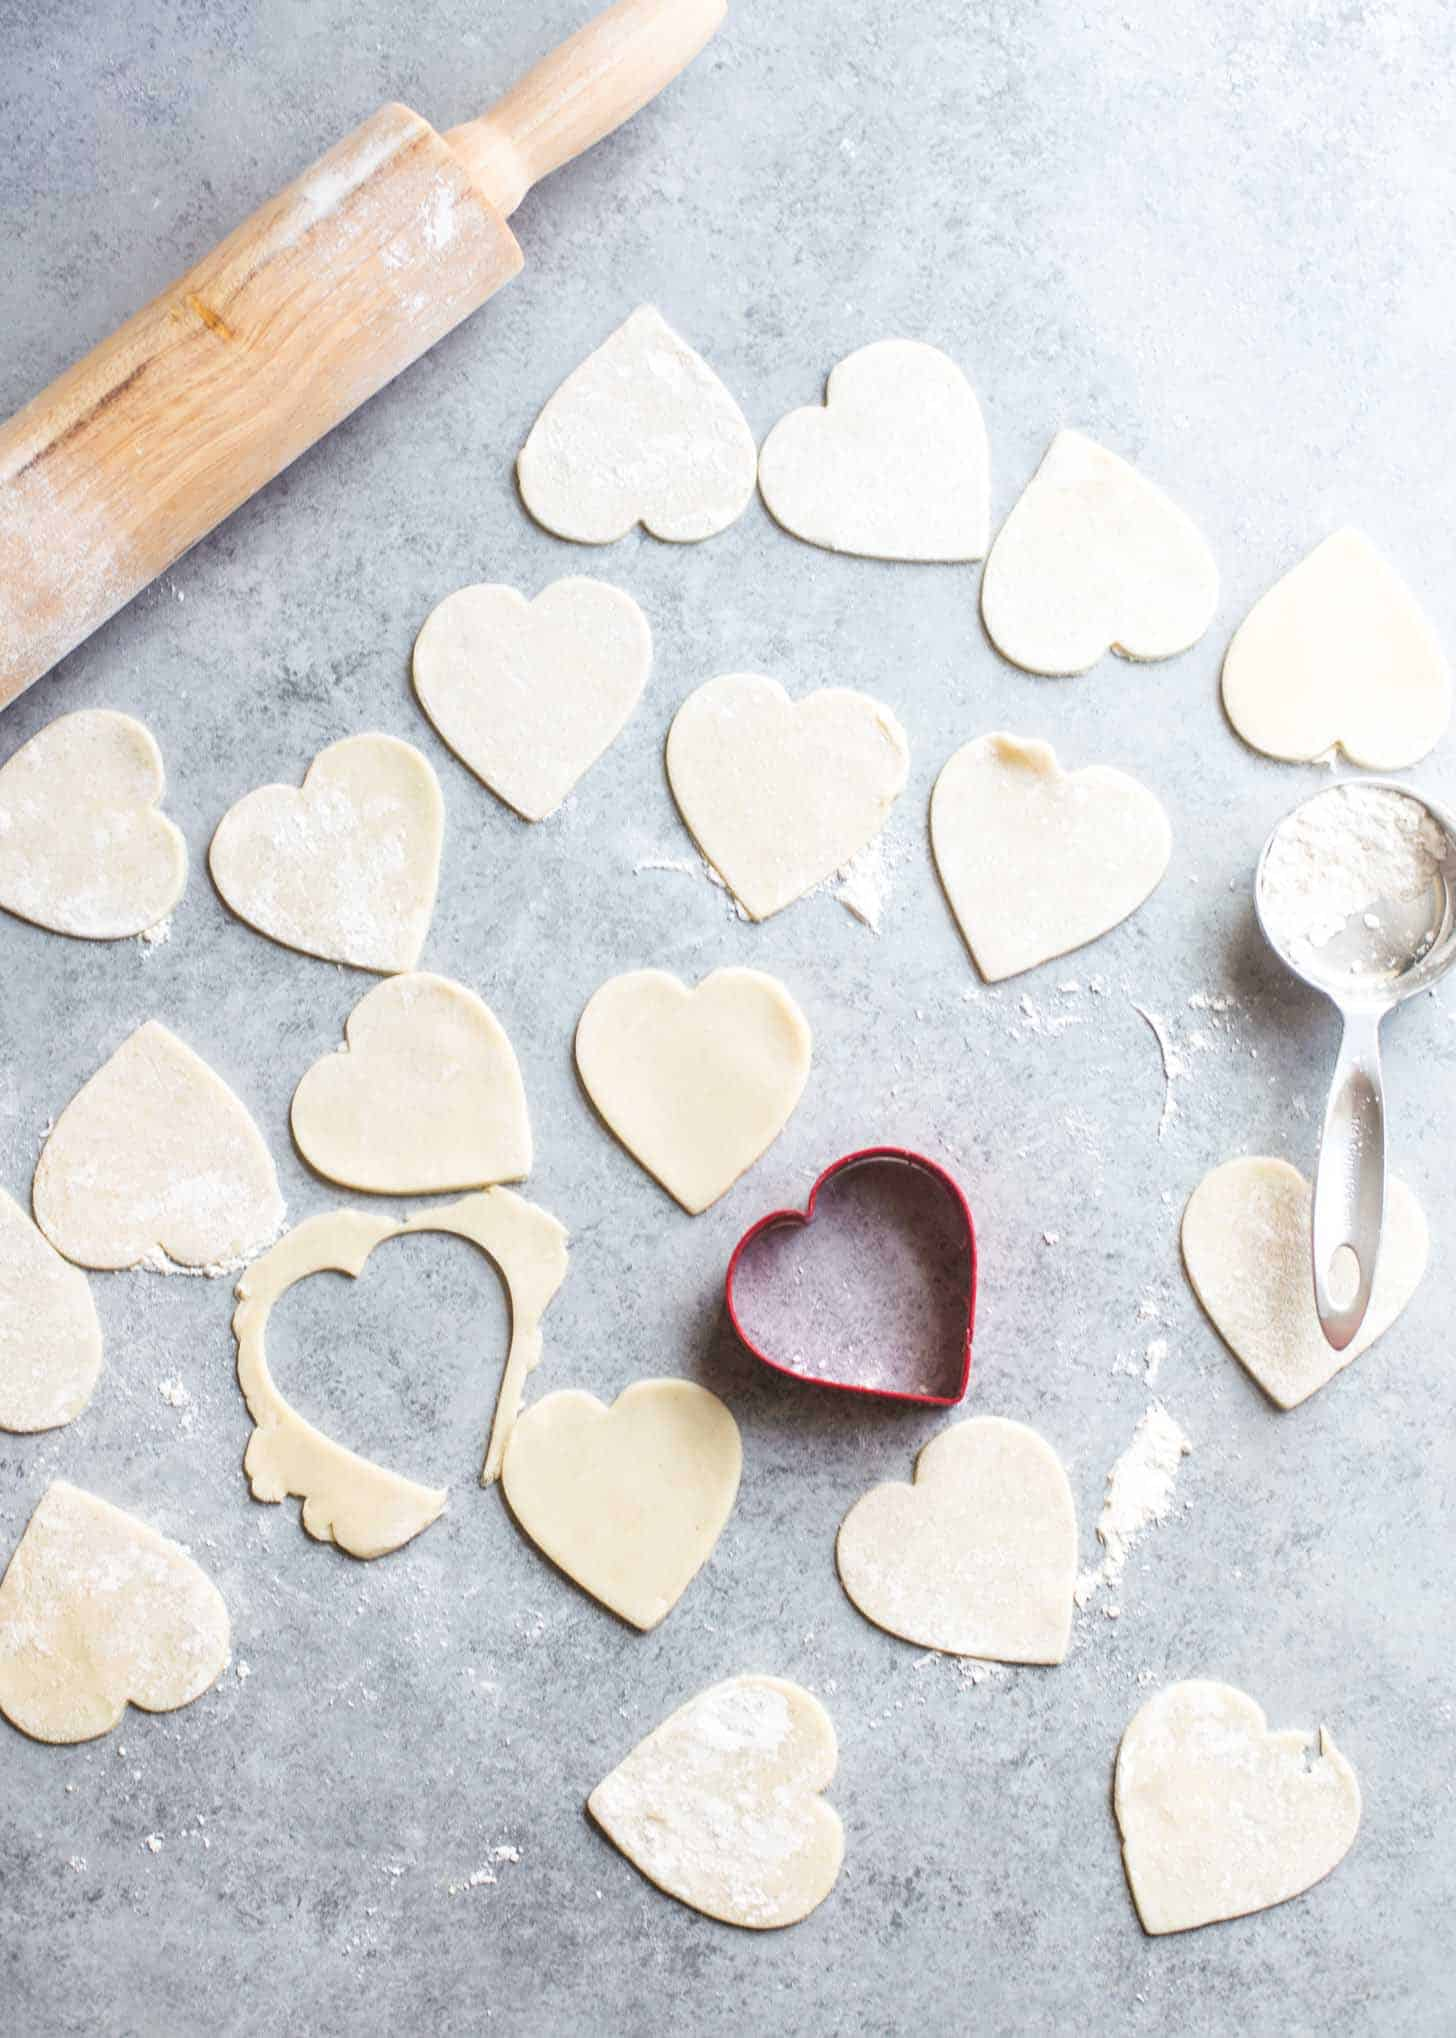 cutting out heart shapes from dough